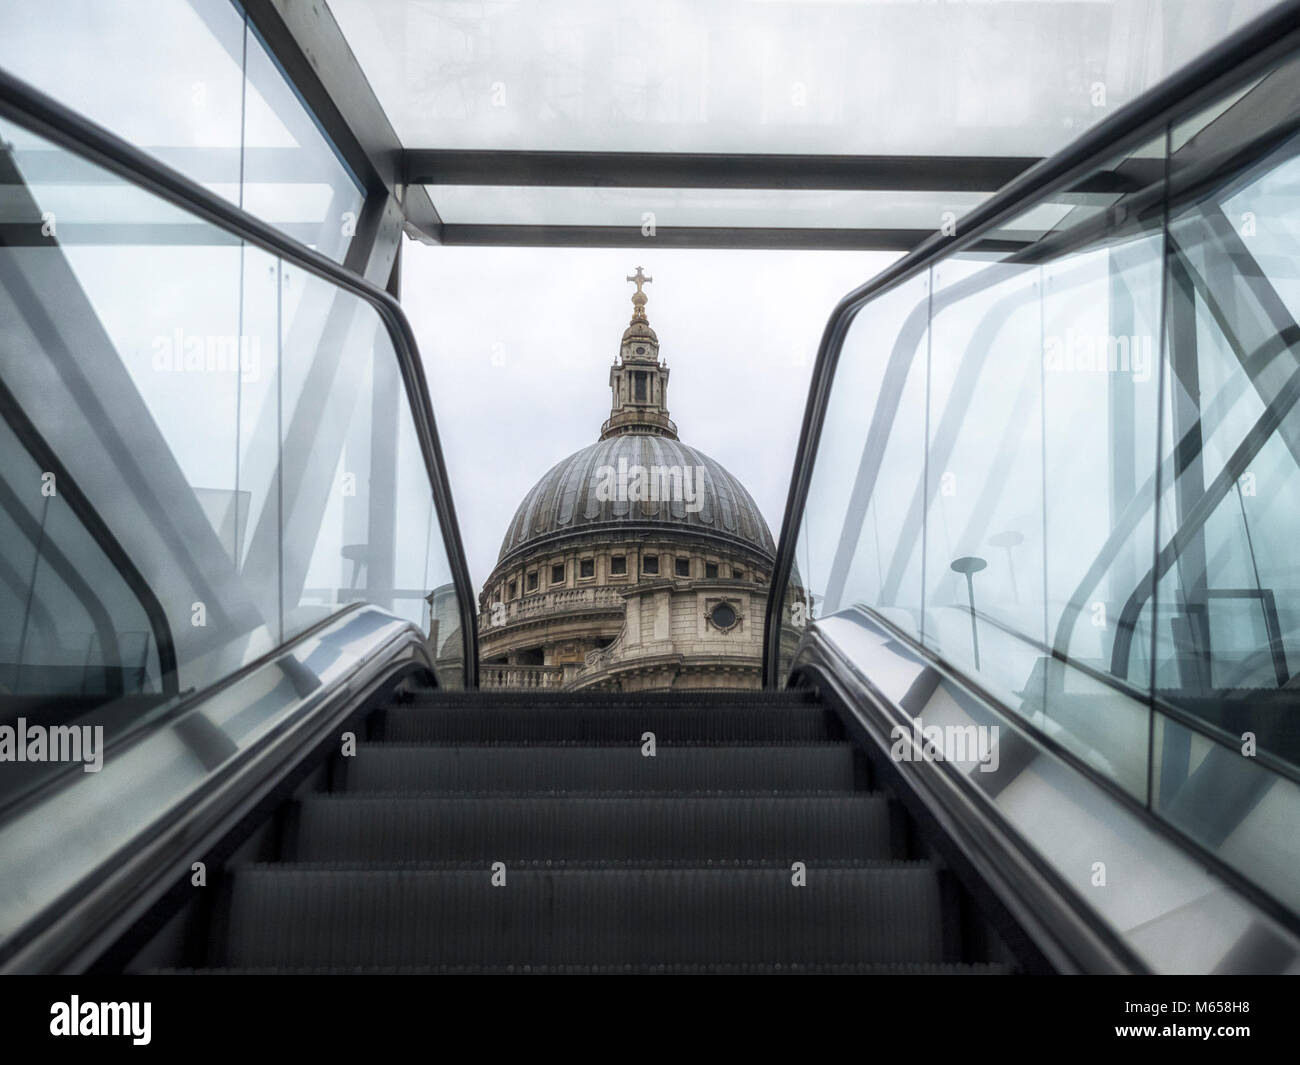 LONDON, UK:  View of the dome of St Paul's Cathedral coming up the escalator of One New Change Centre - Stock Image